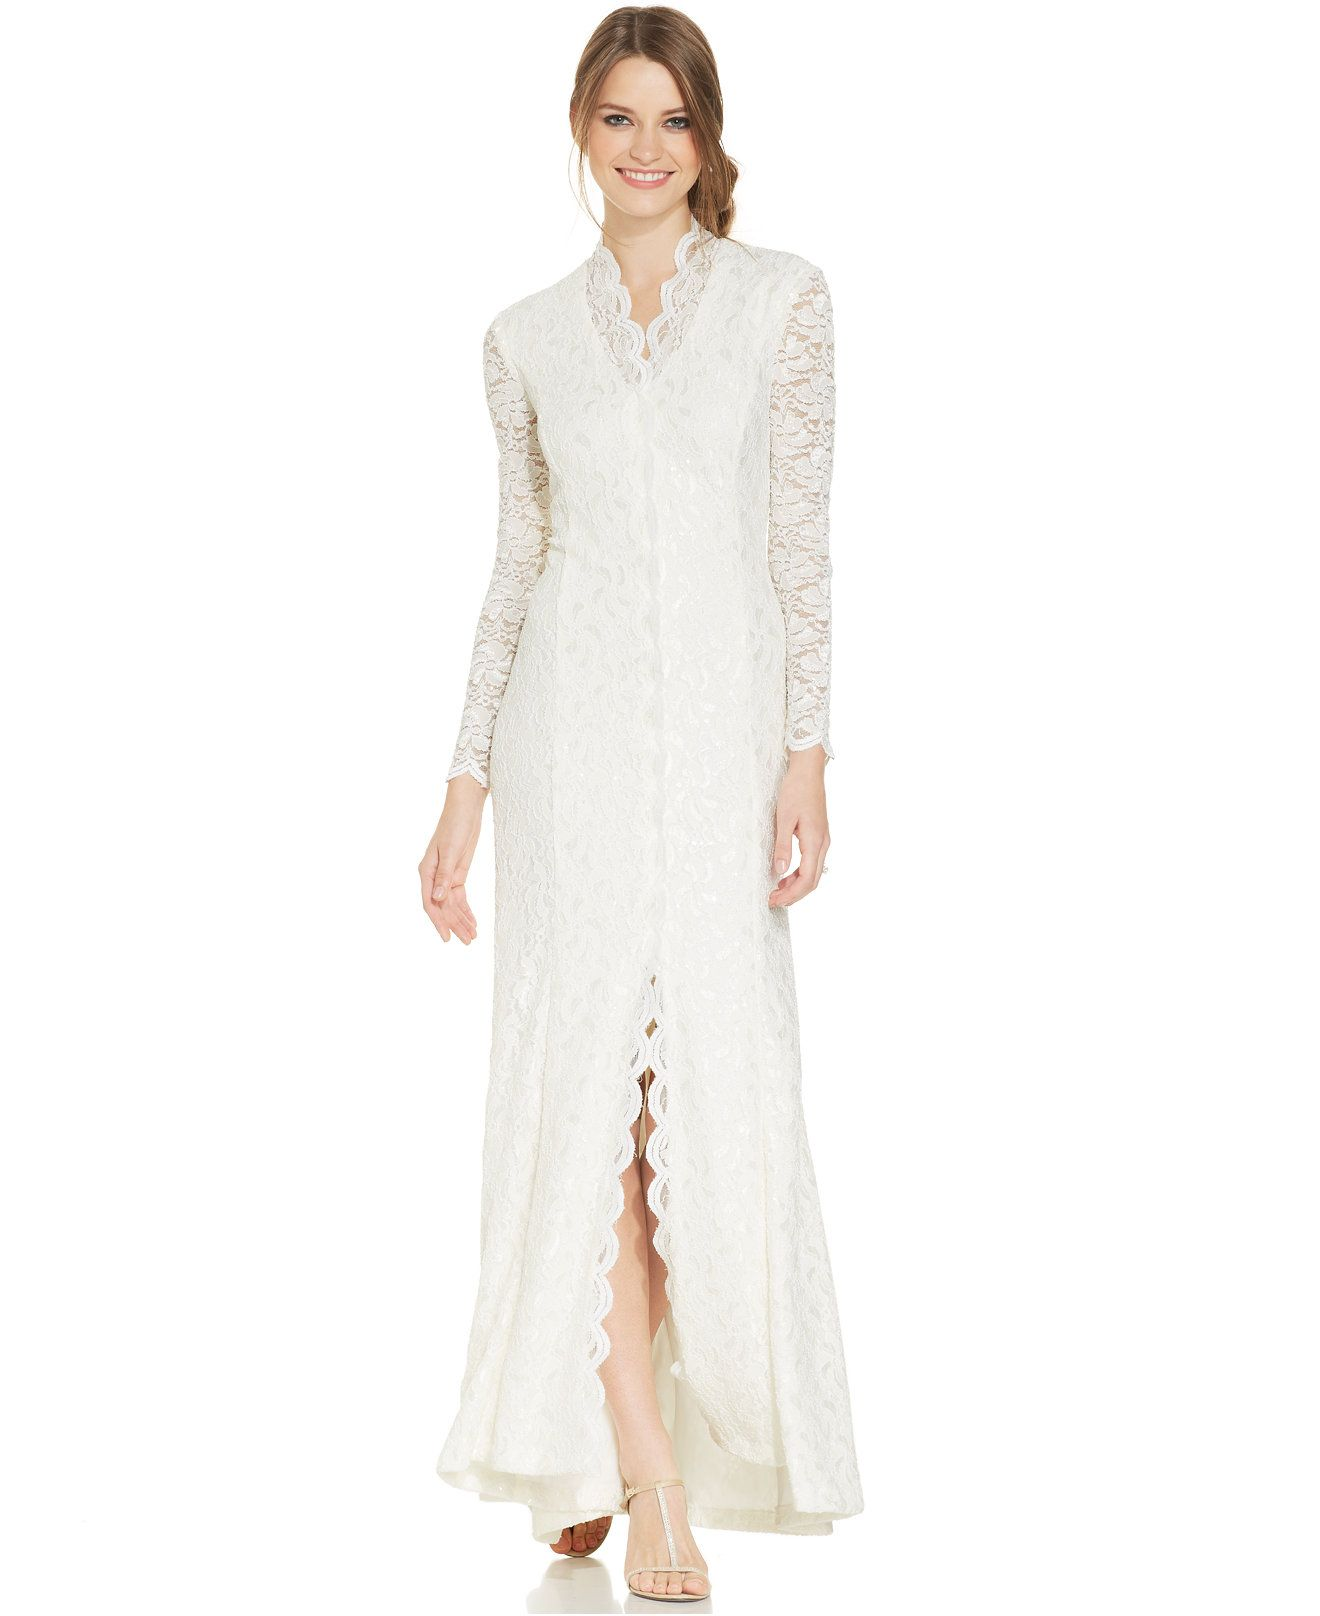 Alex Evenings Long-Sleeve Scalloped Lace Gown - Wedding Day - Women ...